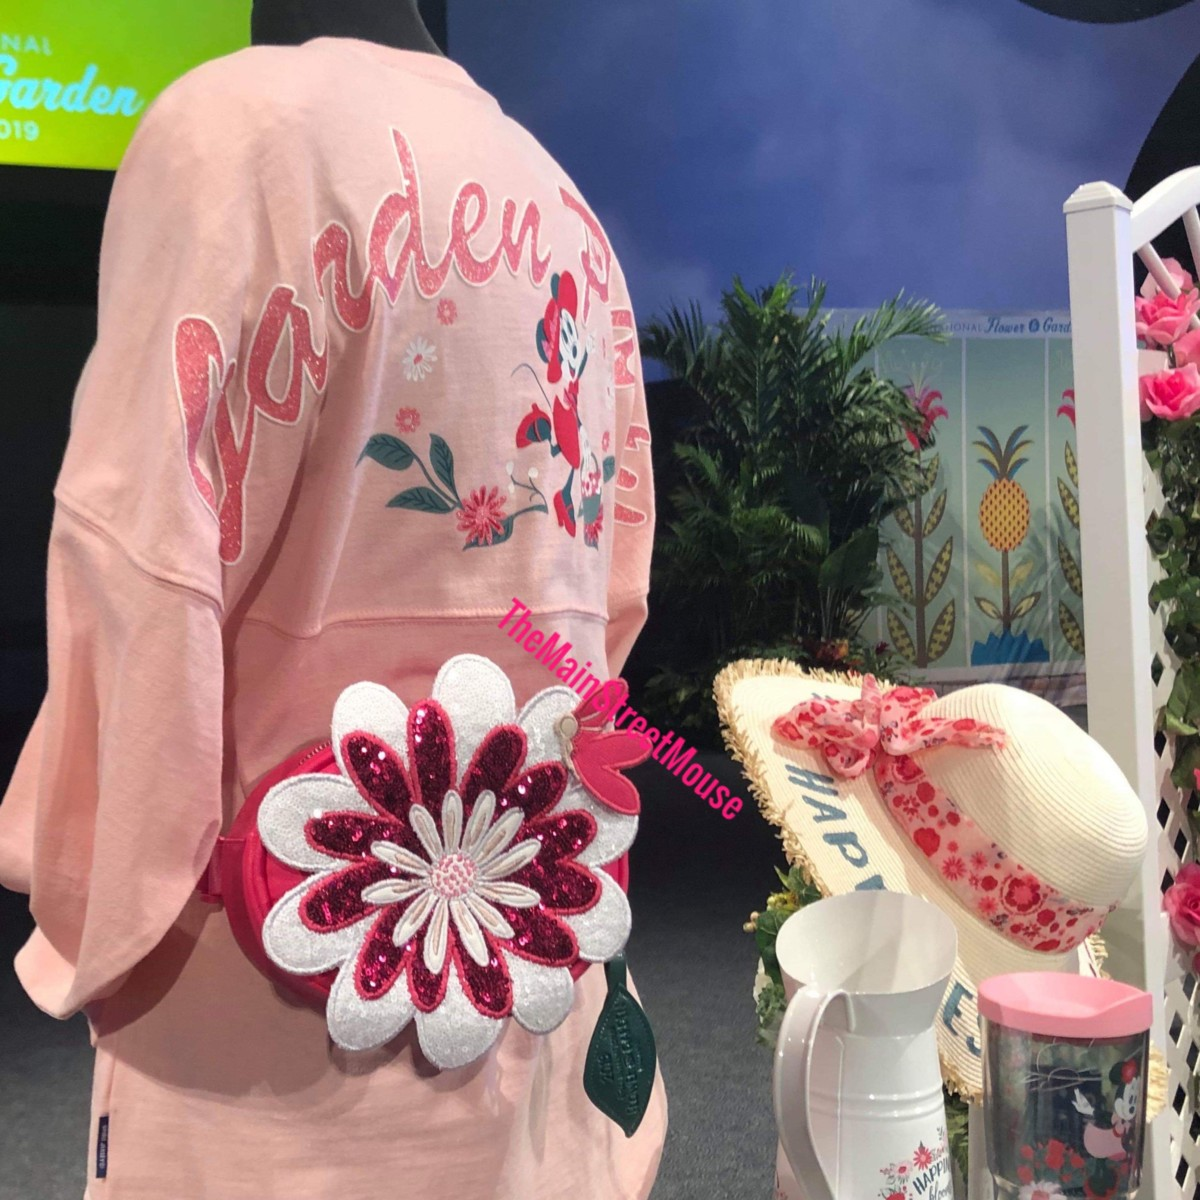 See a Sneak Peek at the Food and Merch Offerings for the 2019 Epcot International Flower and Garden Festival! #FreshEpcot 9